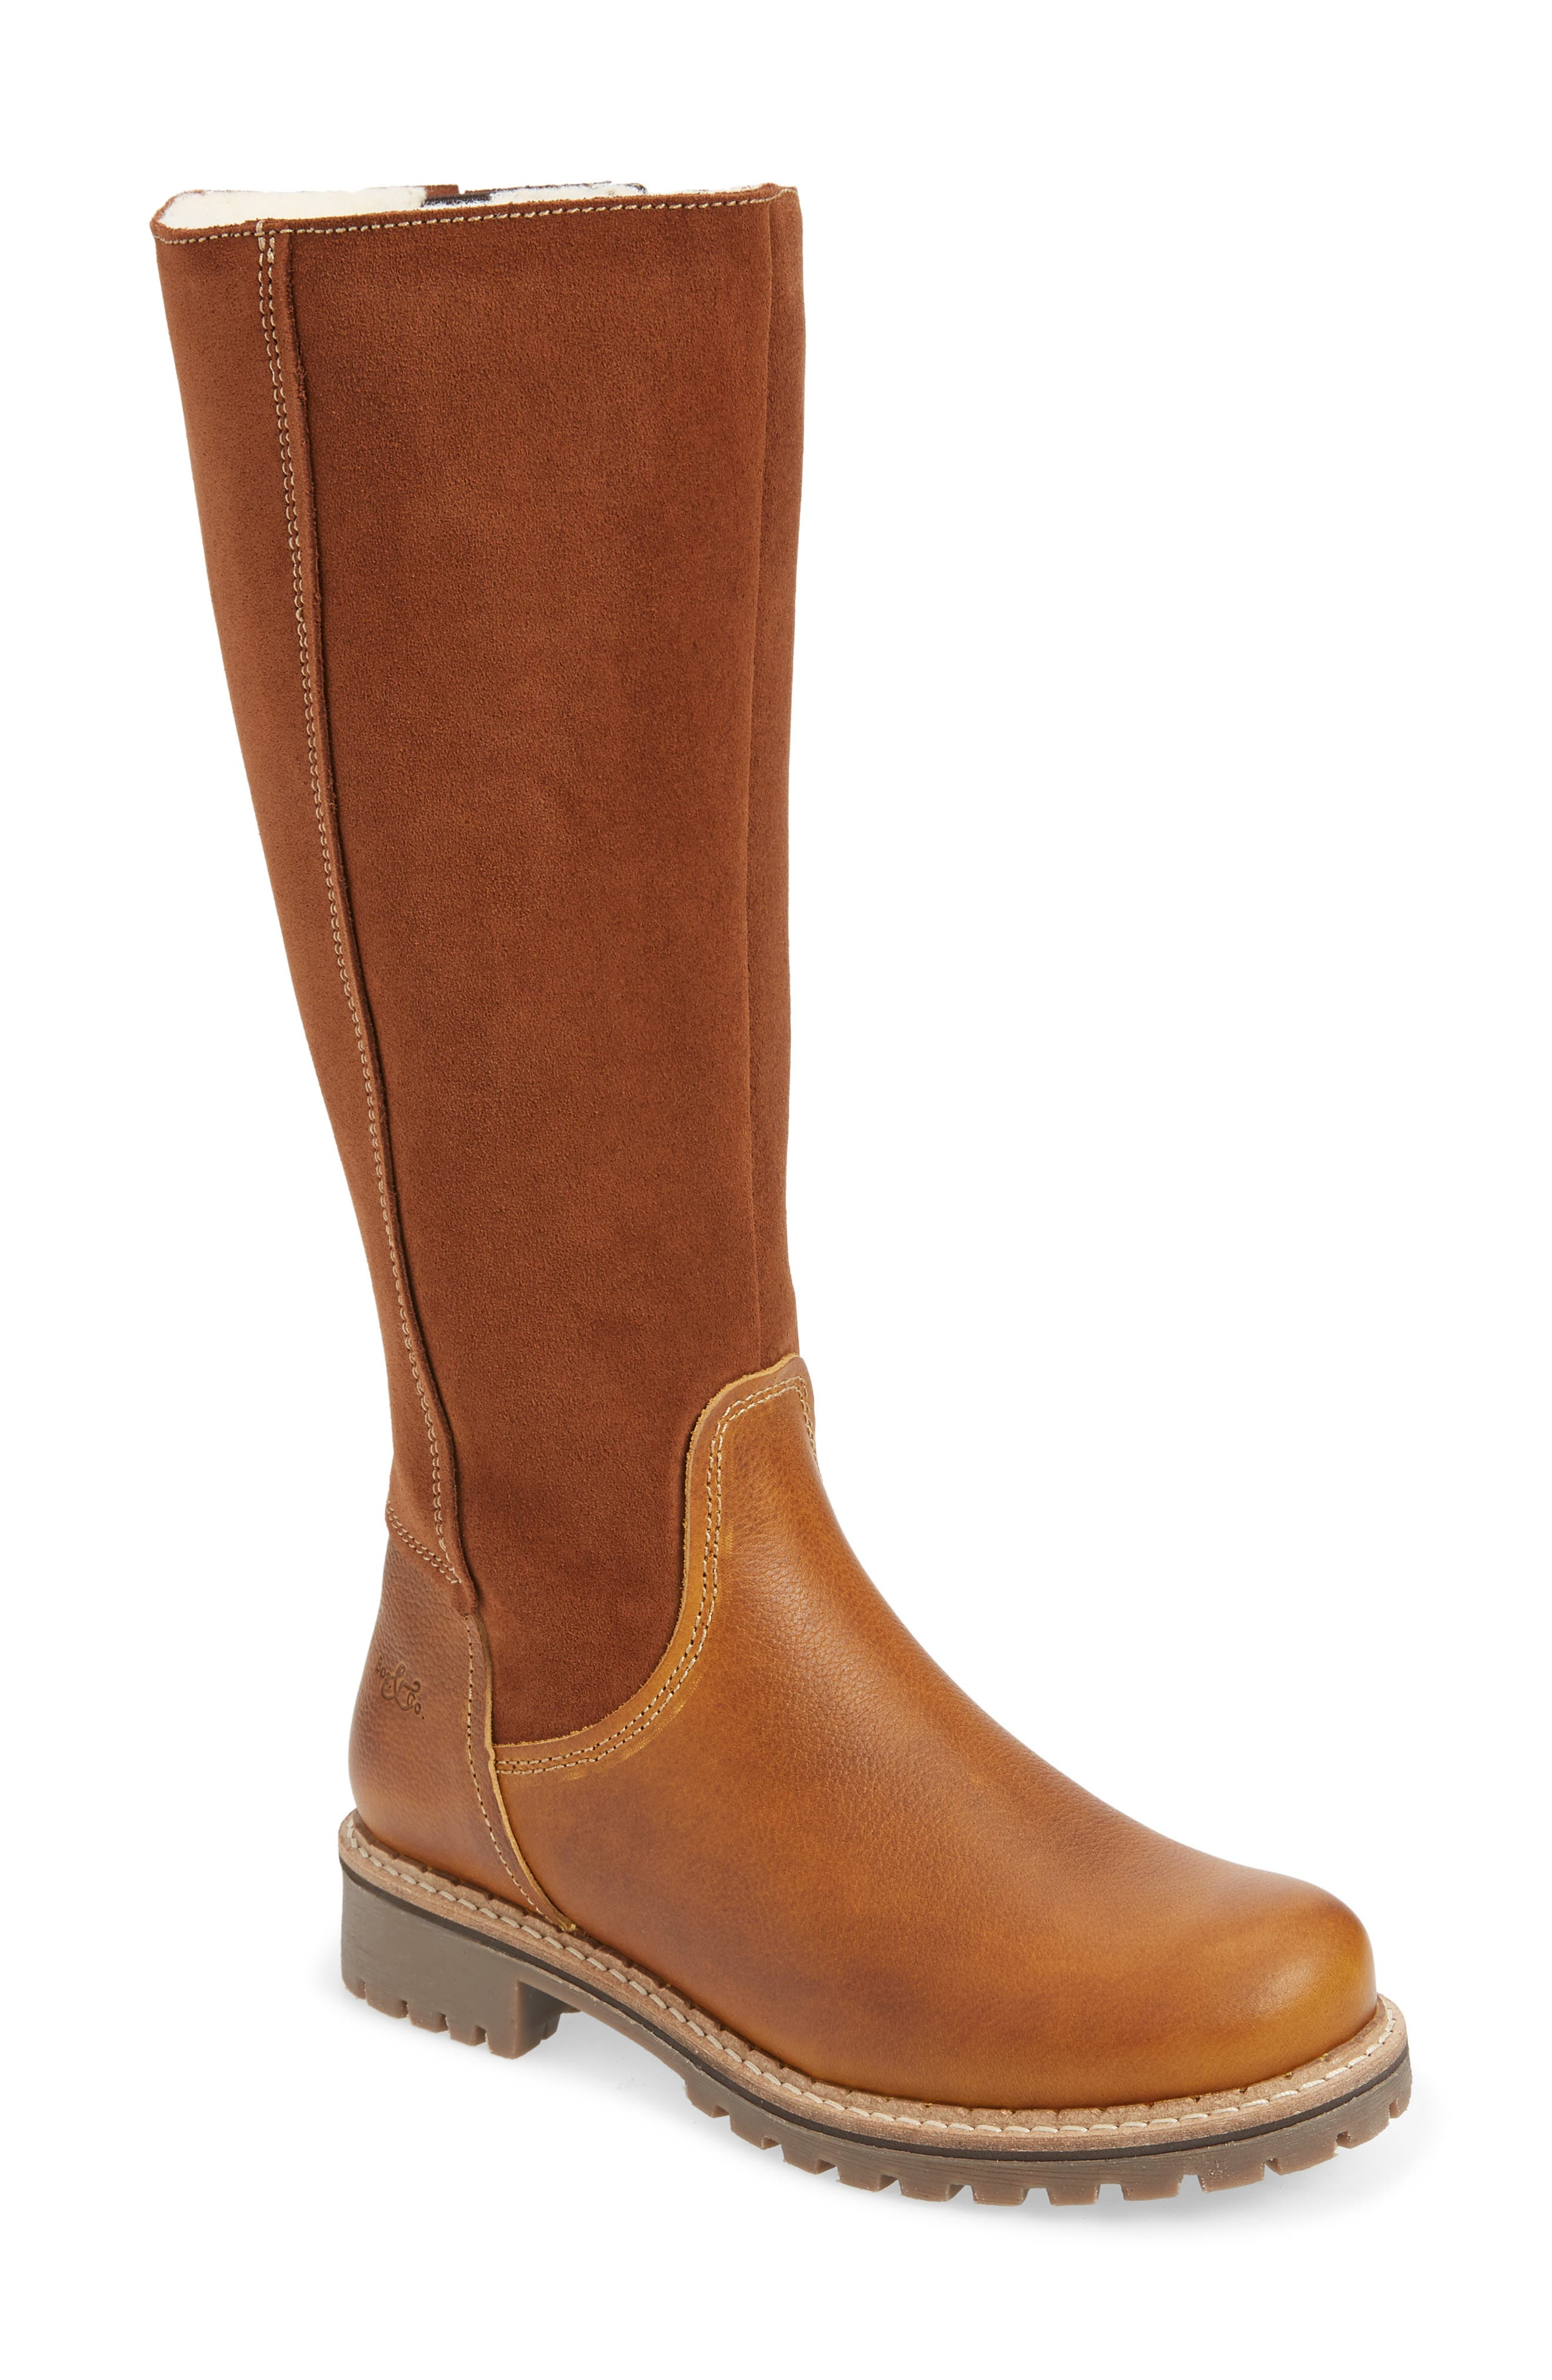 The merino-wool lining of this warm, comfortable knee-high boot is backed by an Aquastop breathable, water-repellent membrane, while the chunky lugged platform gives you superior traction in wet or snowy weather. Style Name: Bos. & Co. Hudson Waterproof Boot (Women). Style Number: 5626253. Available in stores.